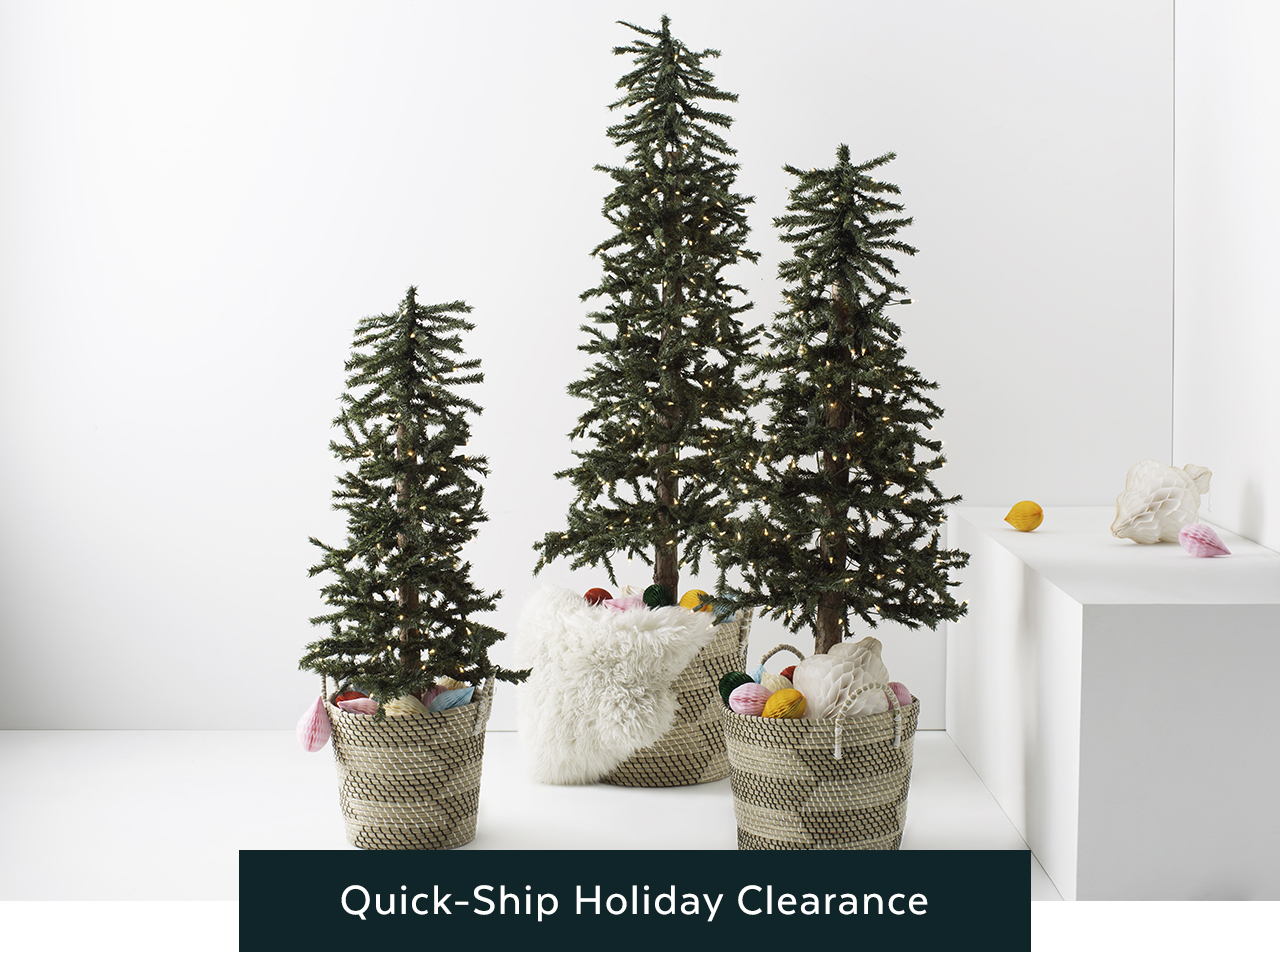 Quick Ship Holiday Clearance